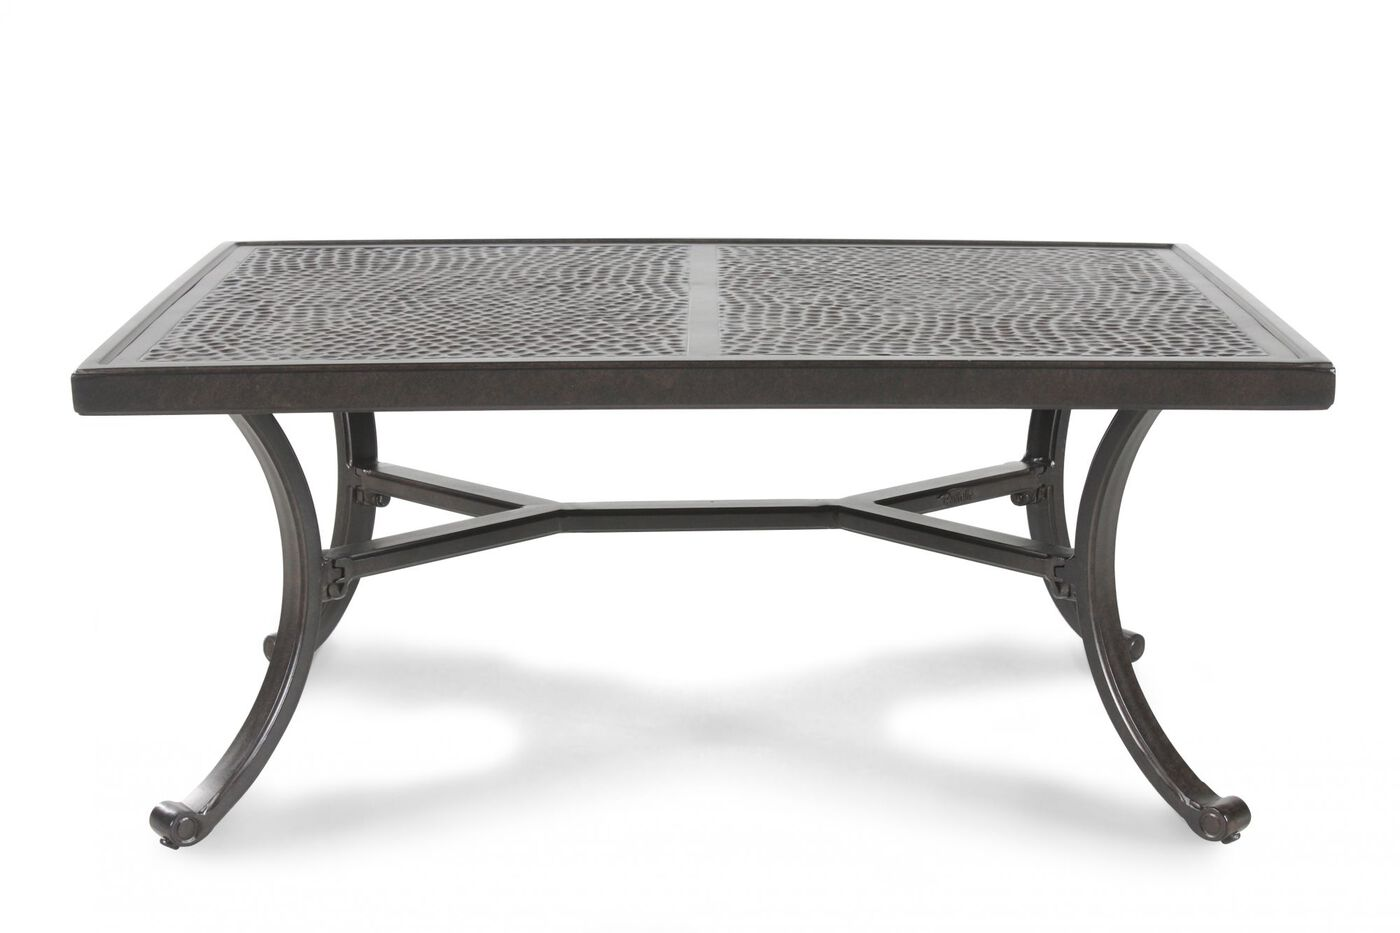 hammered top aluminum patio dining table in dark brown mathis brothers furniture. Black Bedroom Furniture Sets. Home Design Ideas